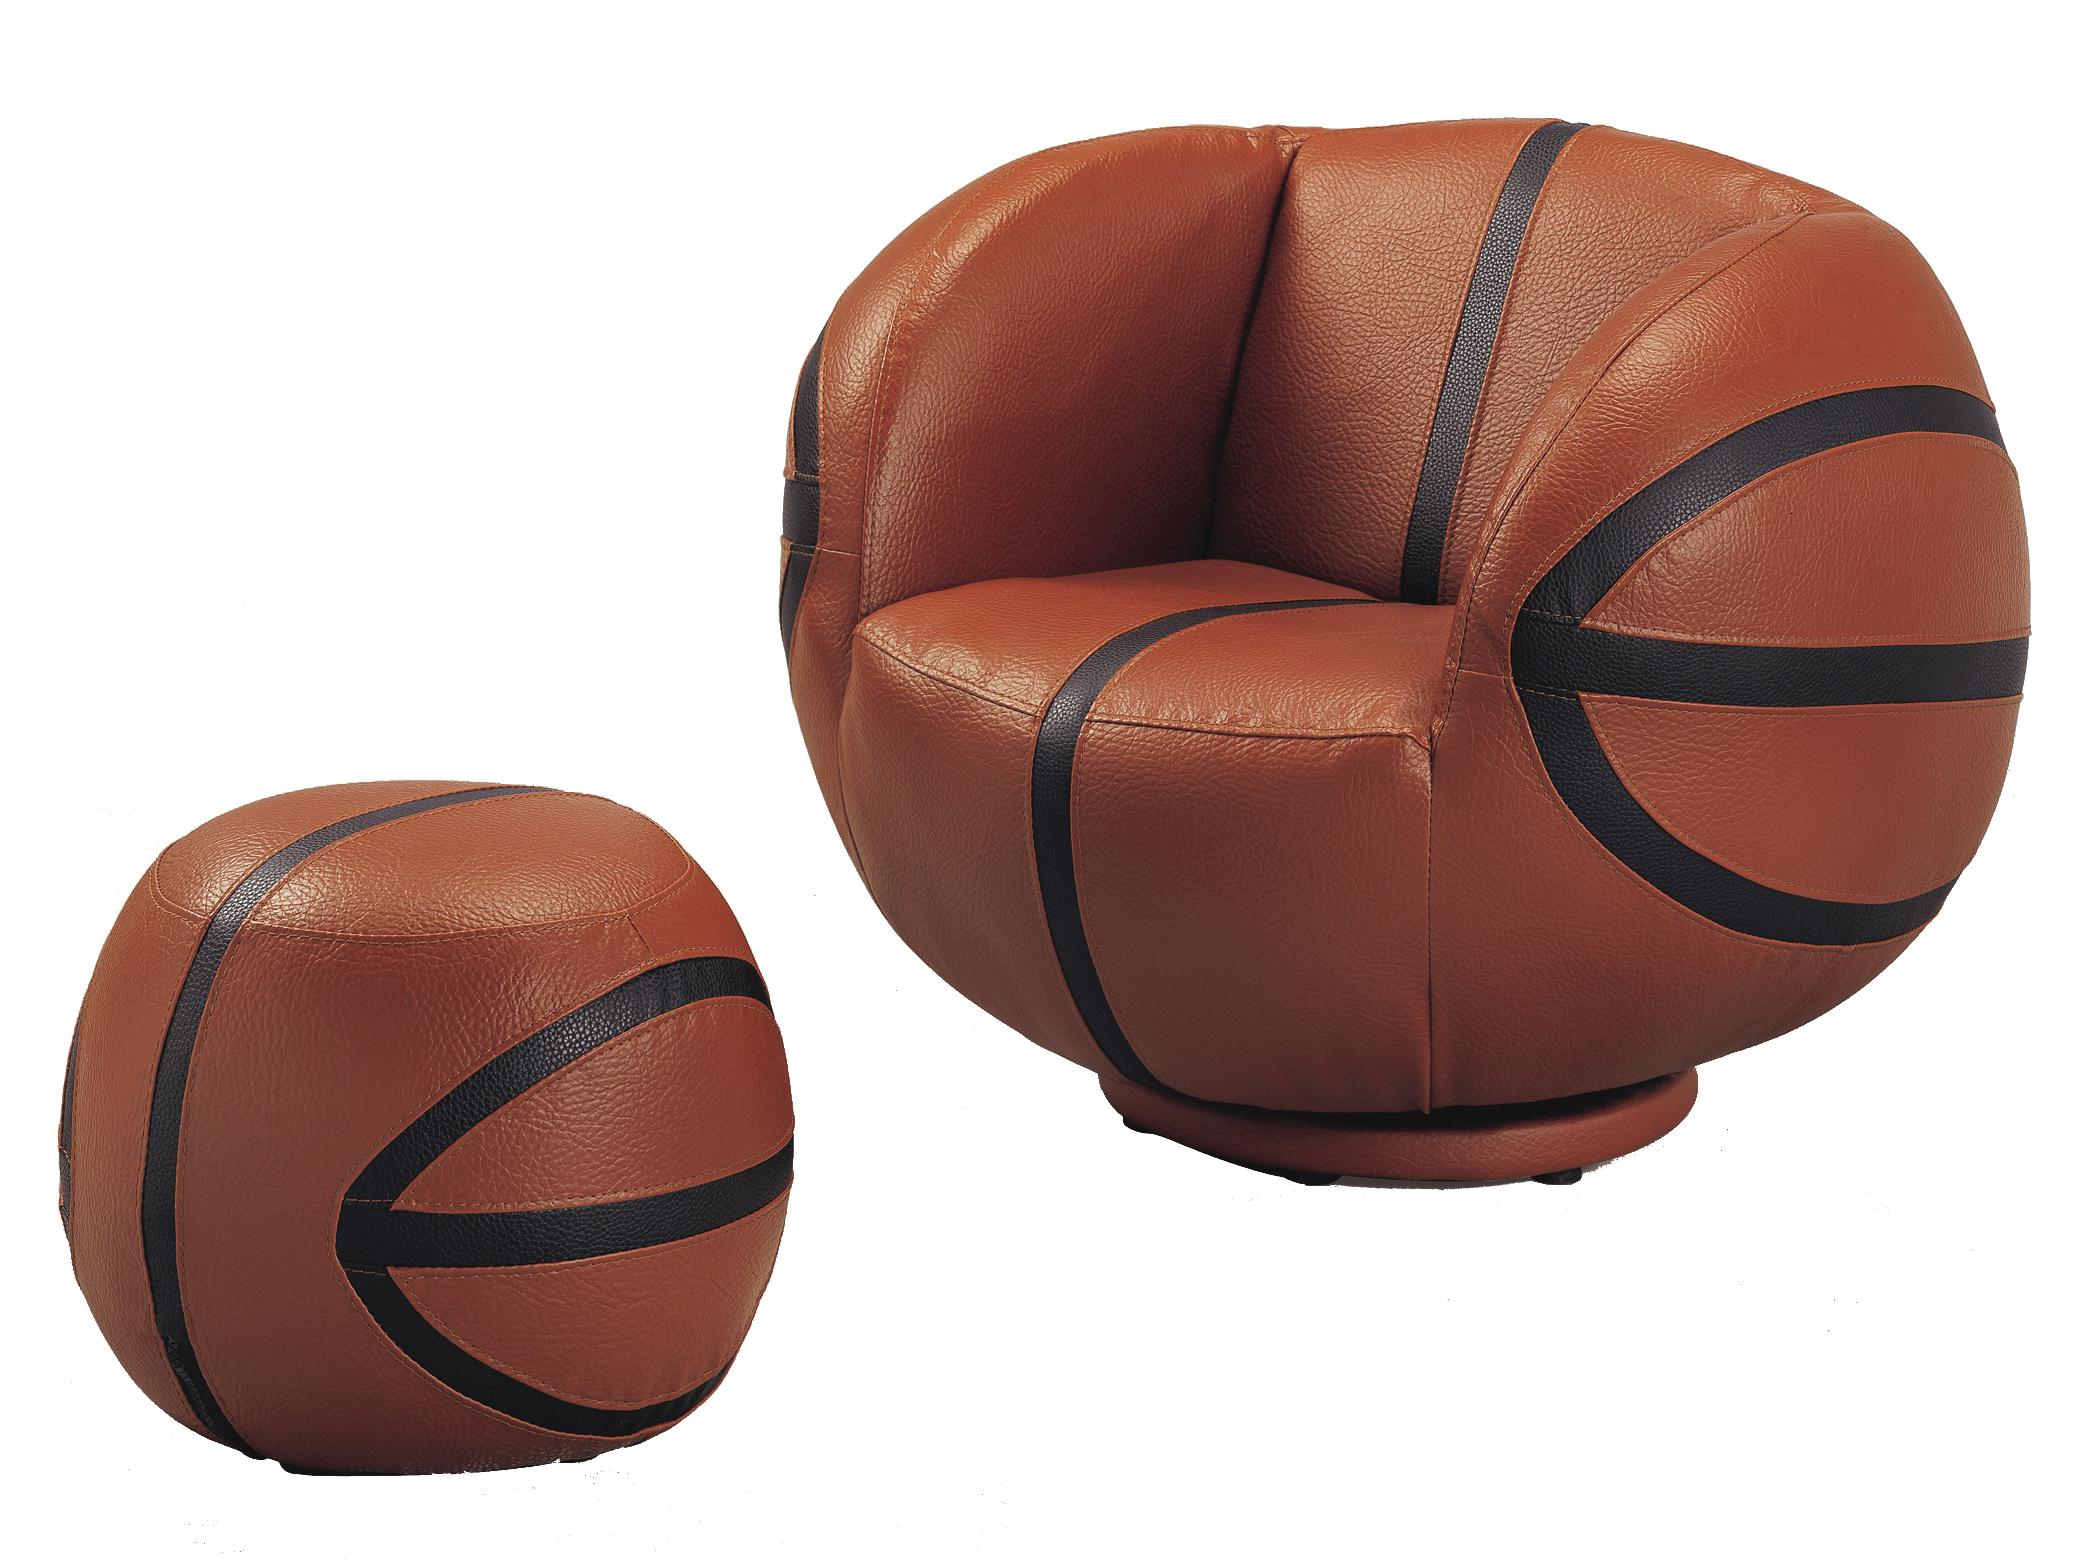 Crown Mark Kids Sport Chairs Basketball Chair & Ottoman - Item Number: 7002